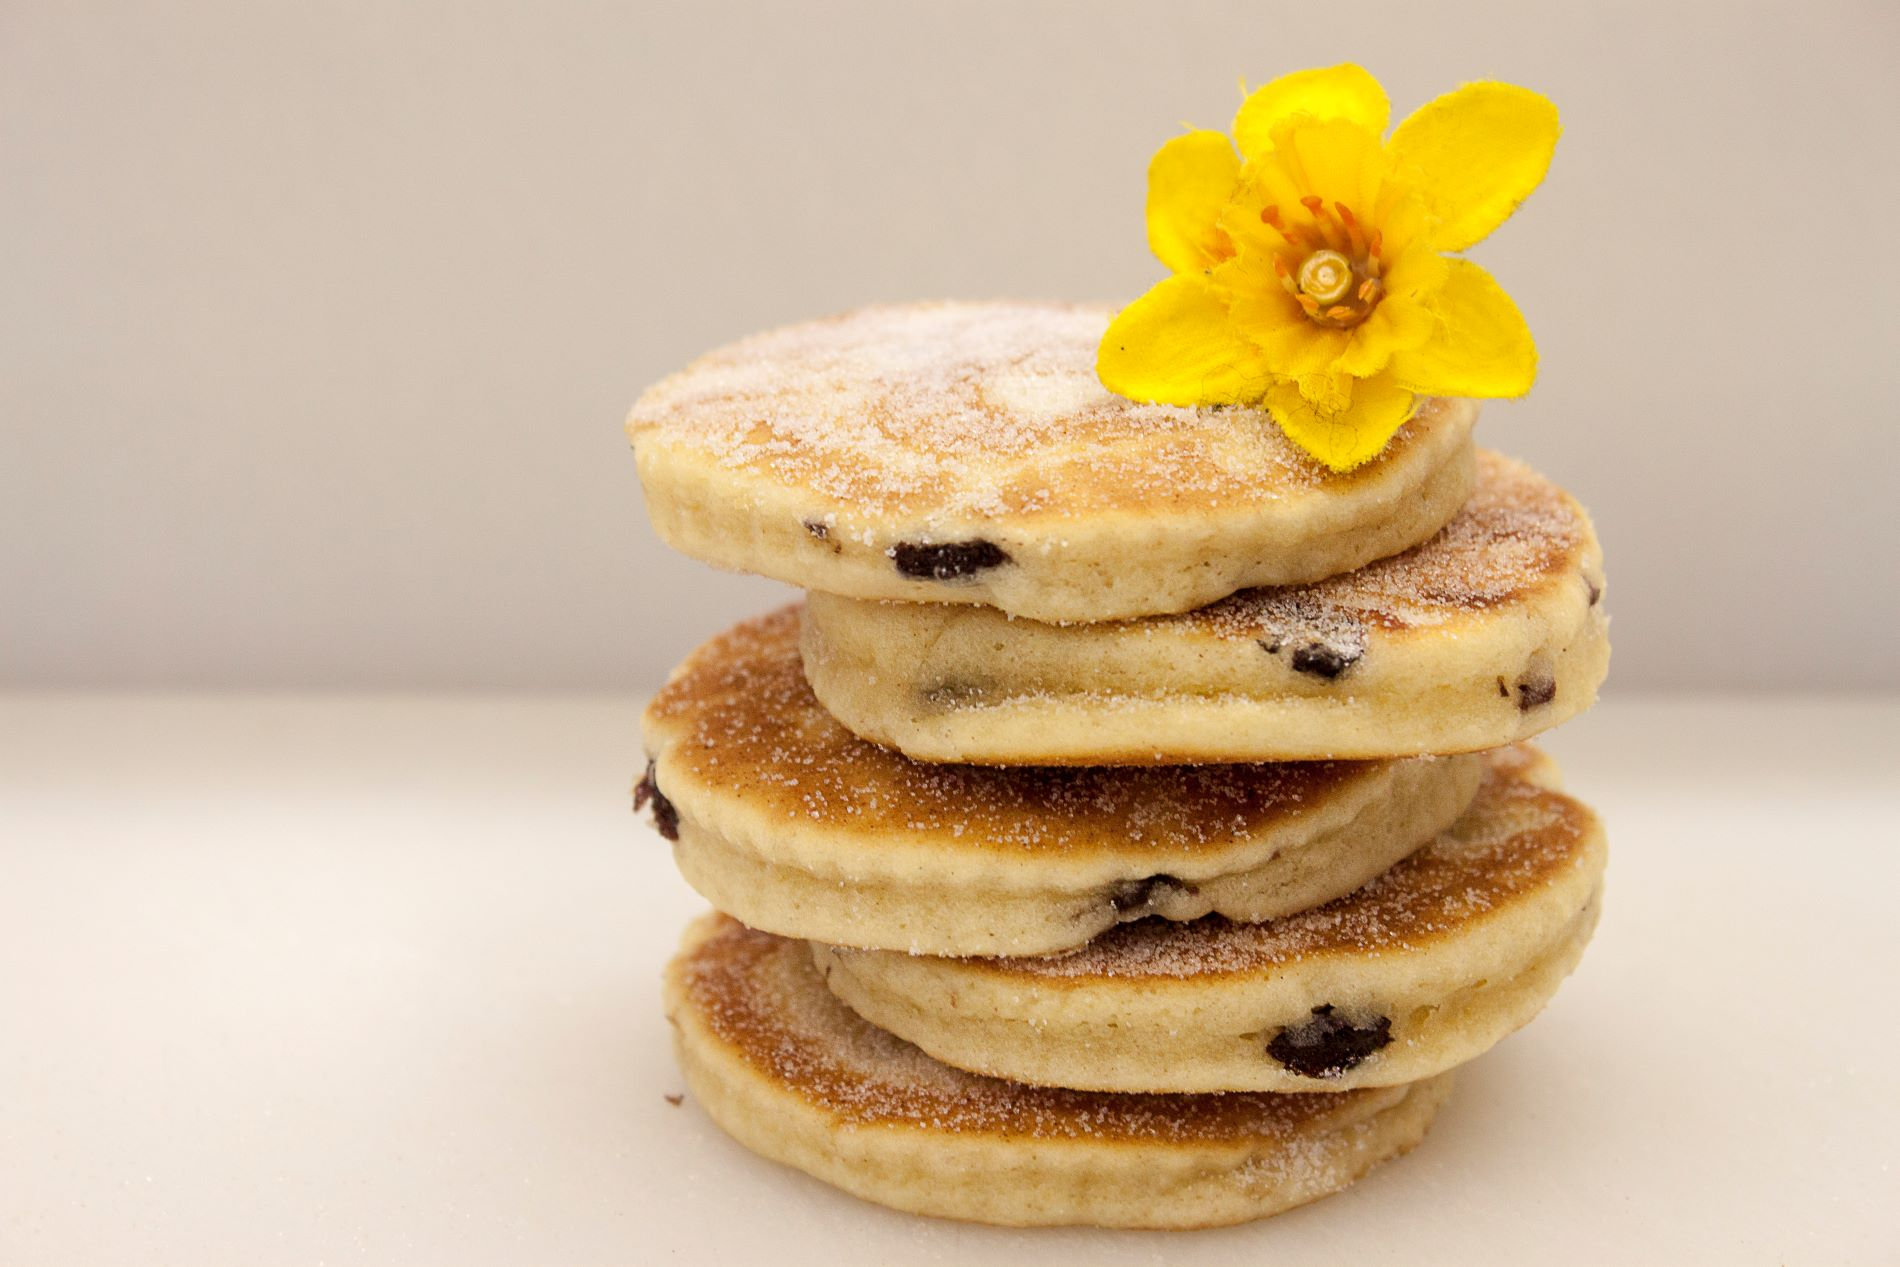 Welsh cakes in a stack with a daffodil